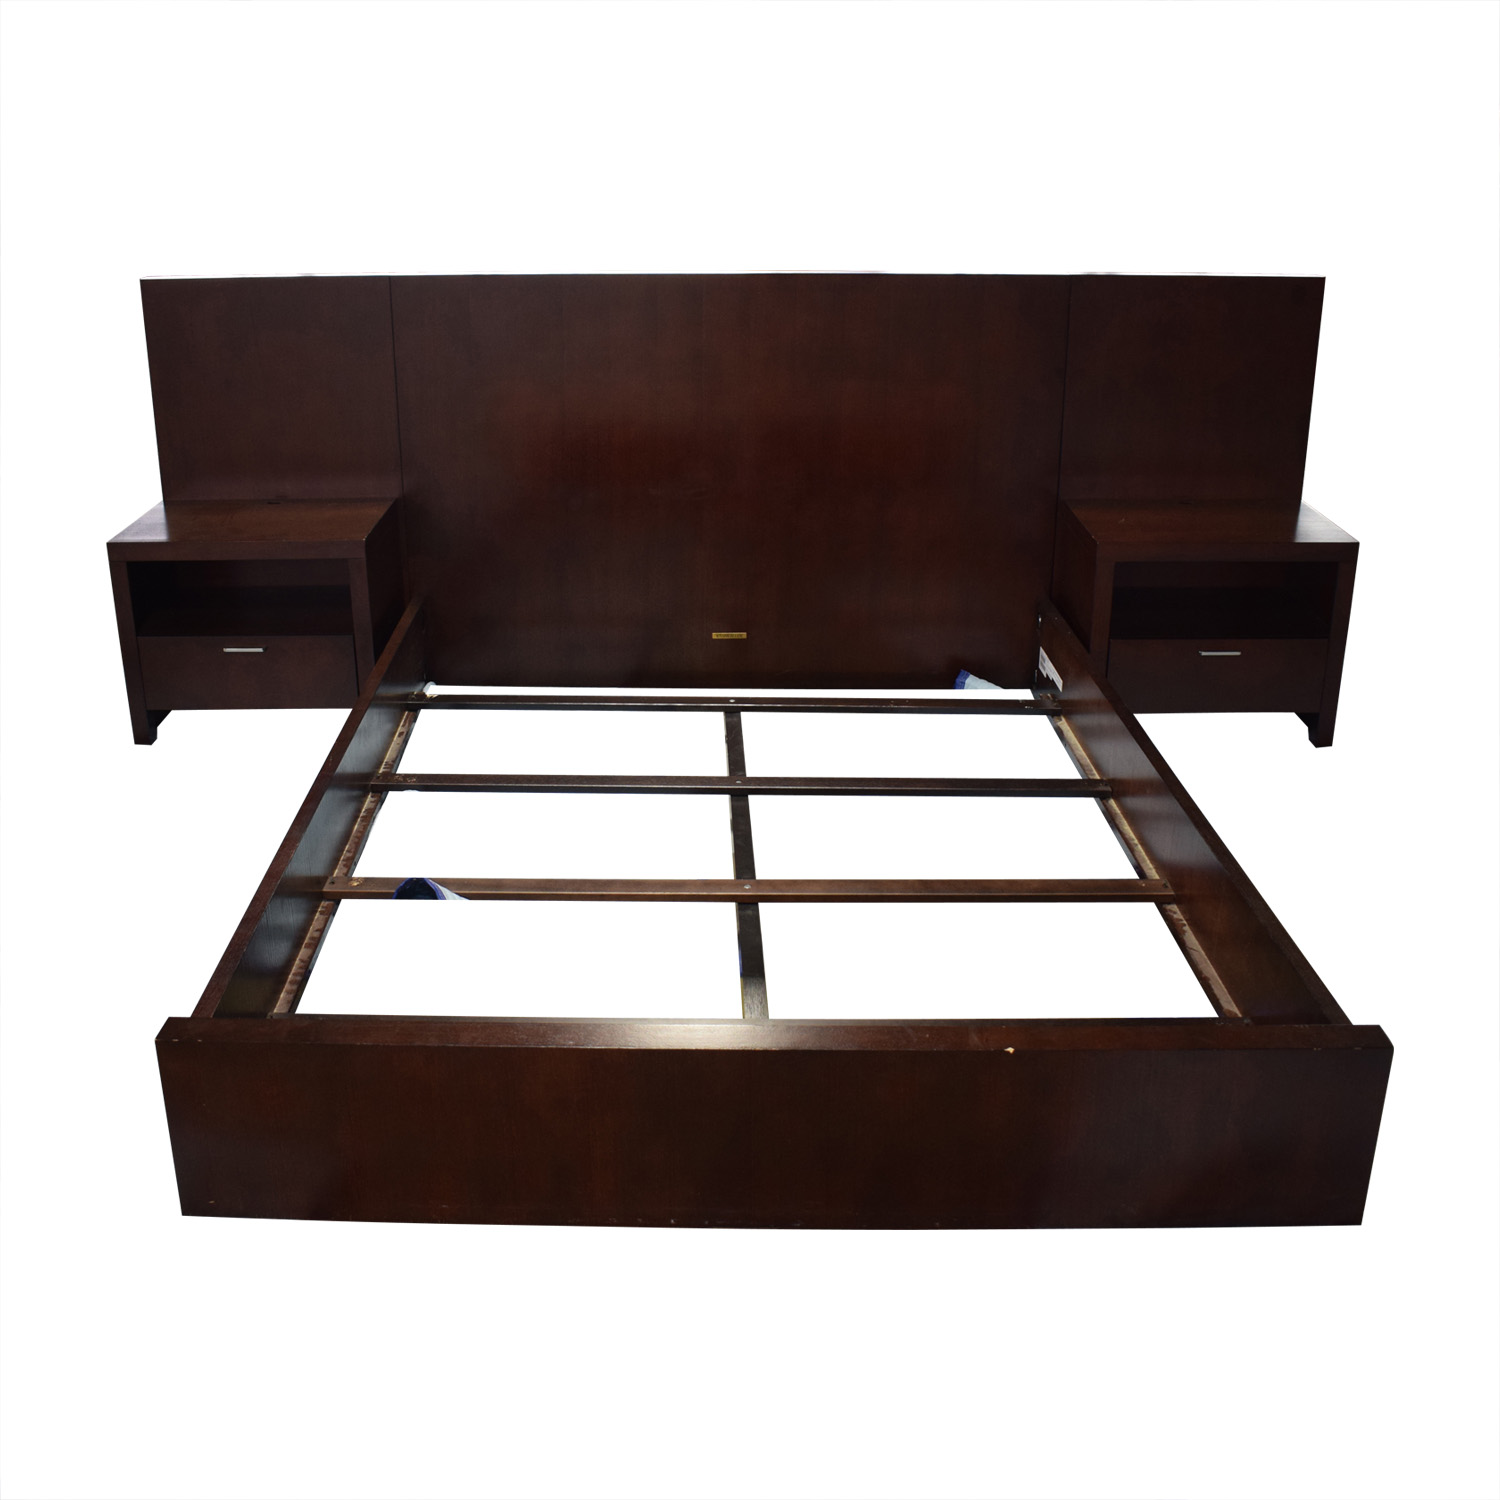 Ethan Allen Ethan Allen Morgan Queen Bed price